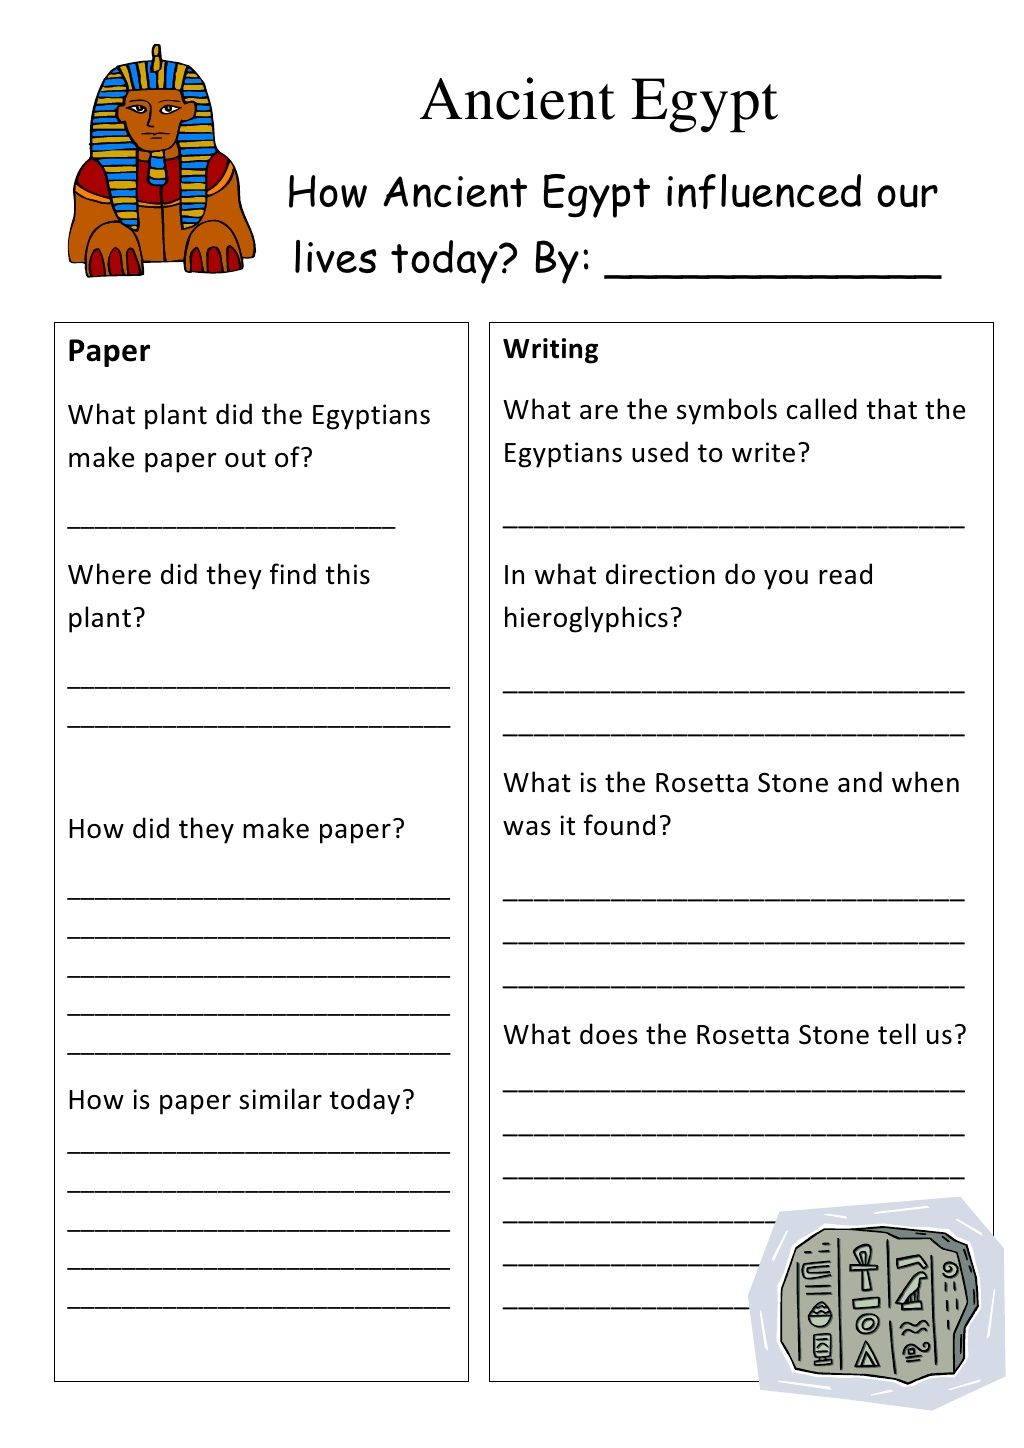 Worksheets Ancient Egypt Worksheets pinterest the worlds catalog of ideas ancient egypt worksheet by 7gchaffey via slideshare